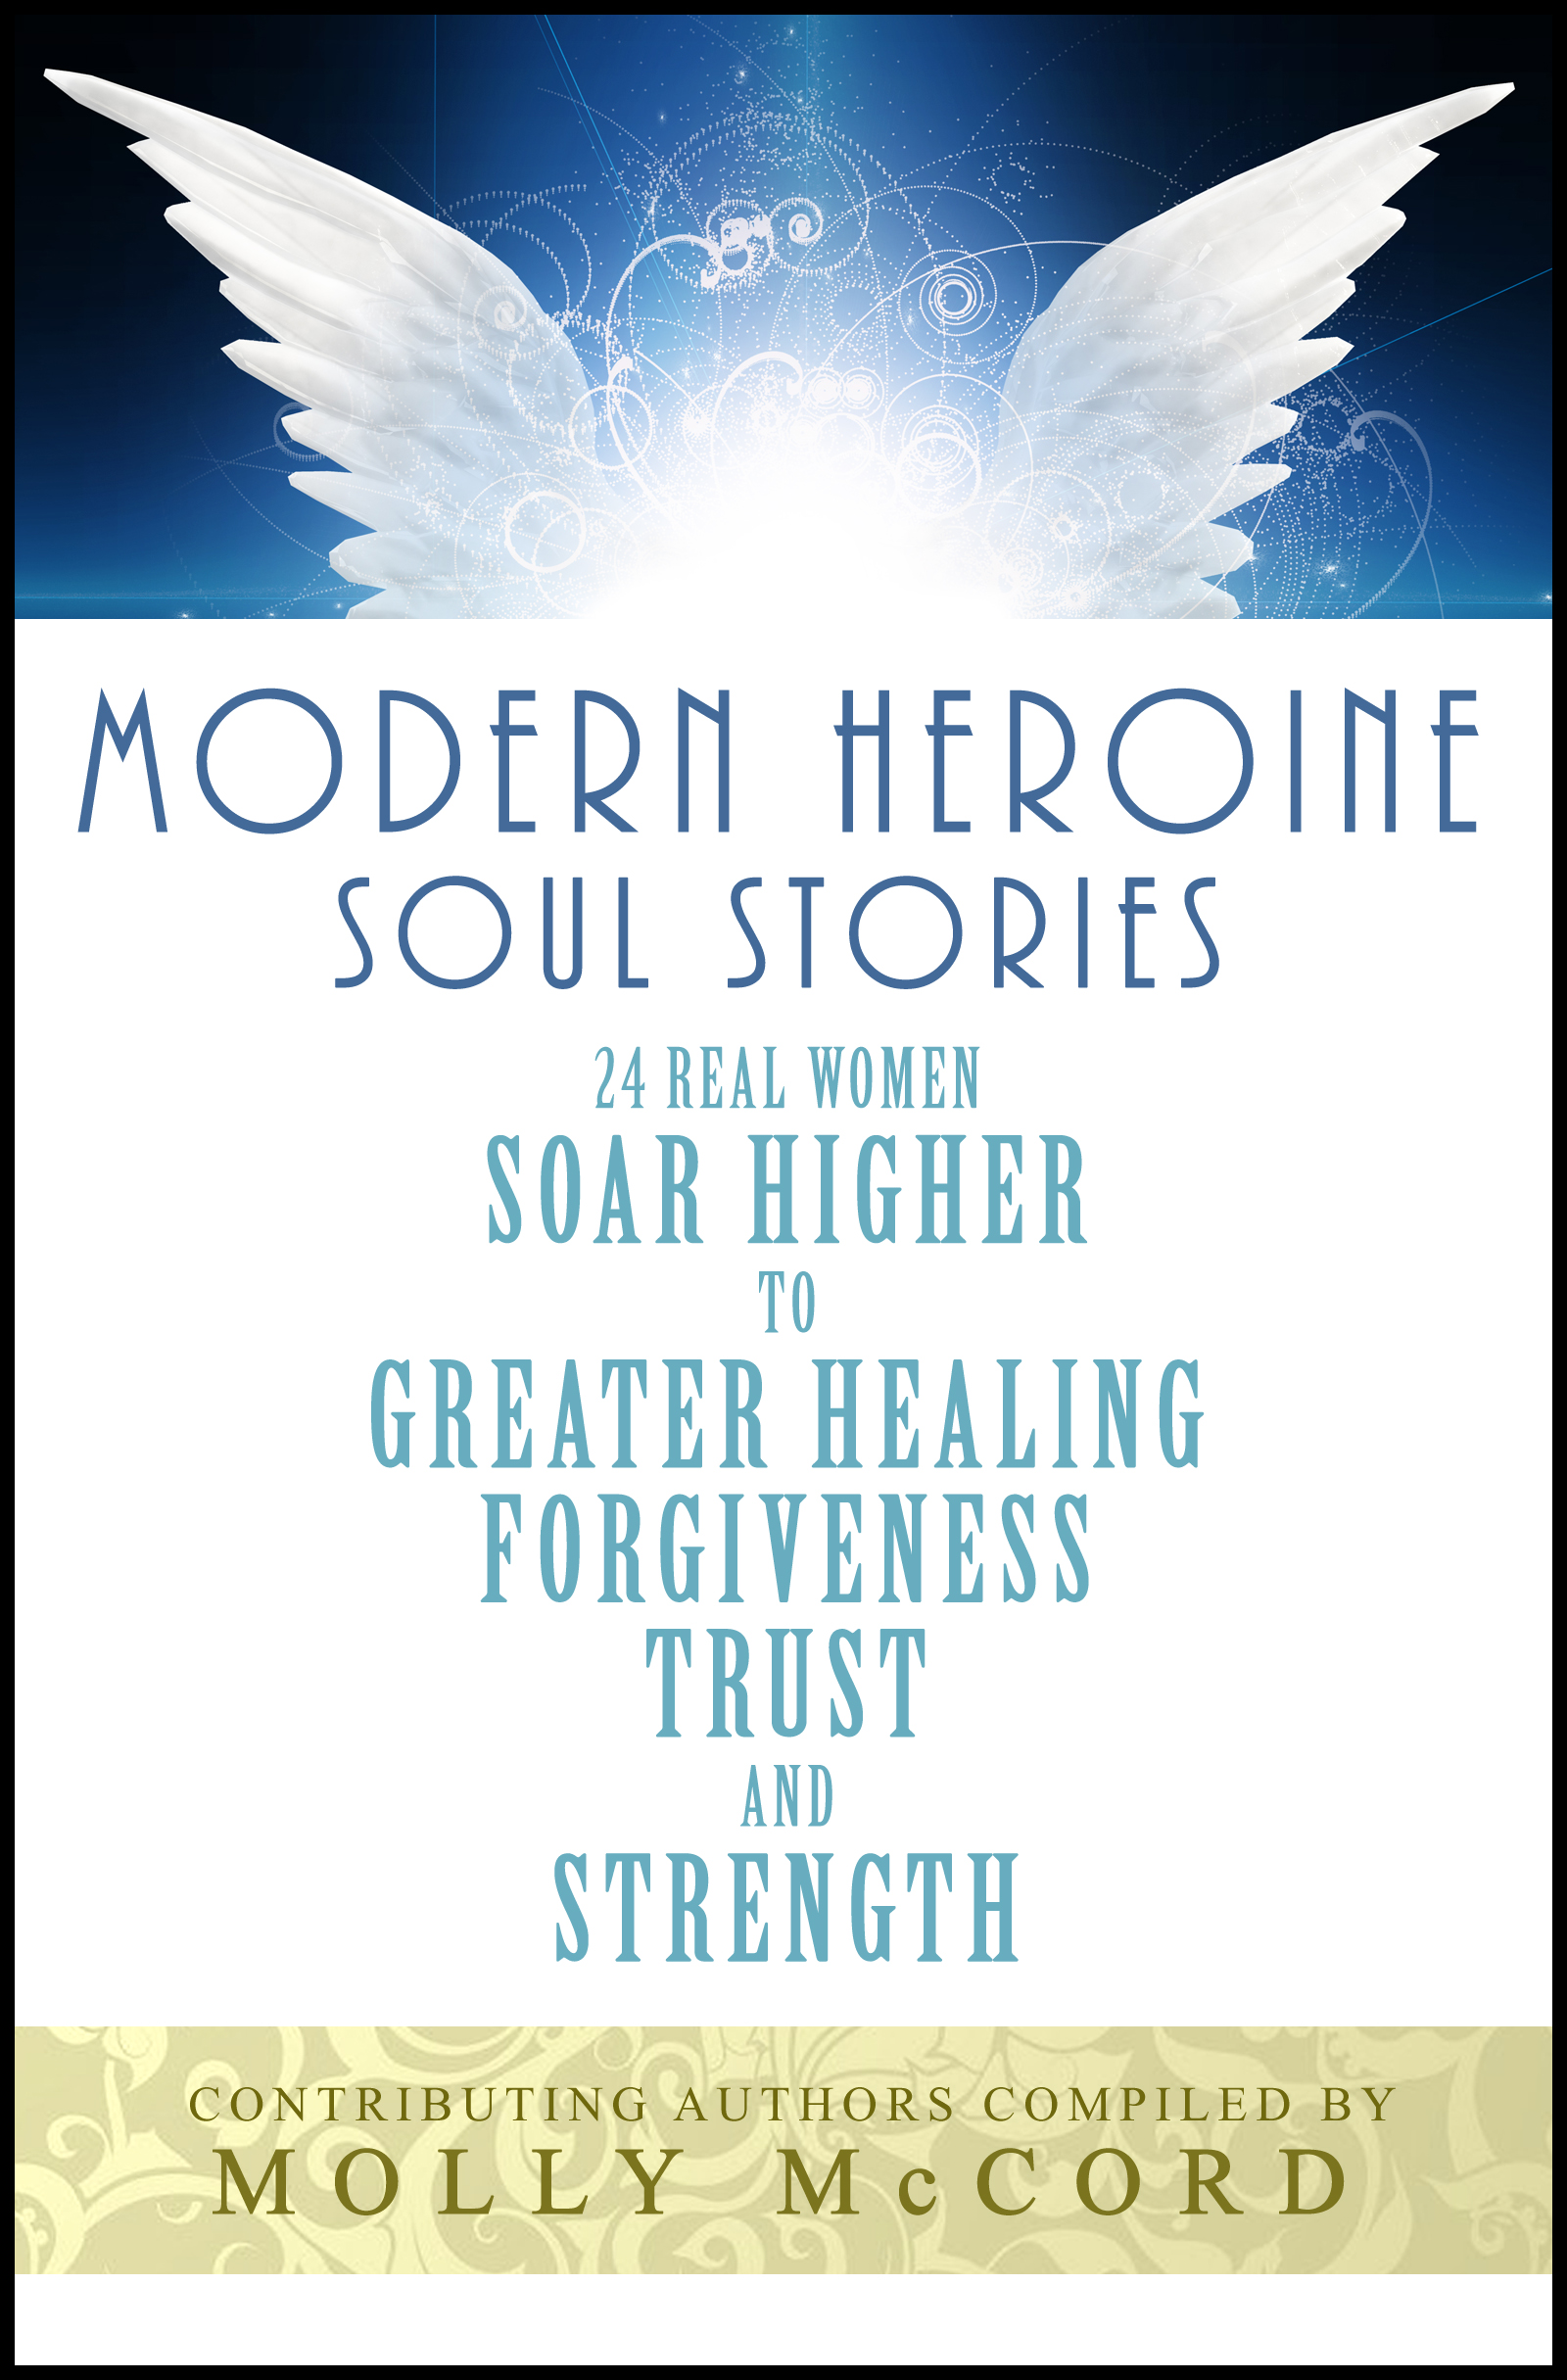 Modern Heroine Soul Stories: 24 Real Women Soar Higher to Greater Healing,  Forgiveness, Trust and Strength, an Ebook by Molly McCord